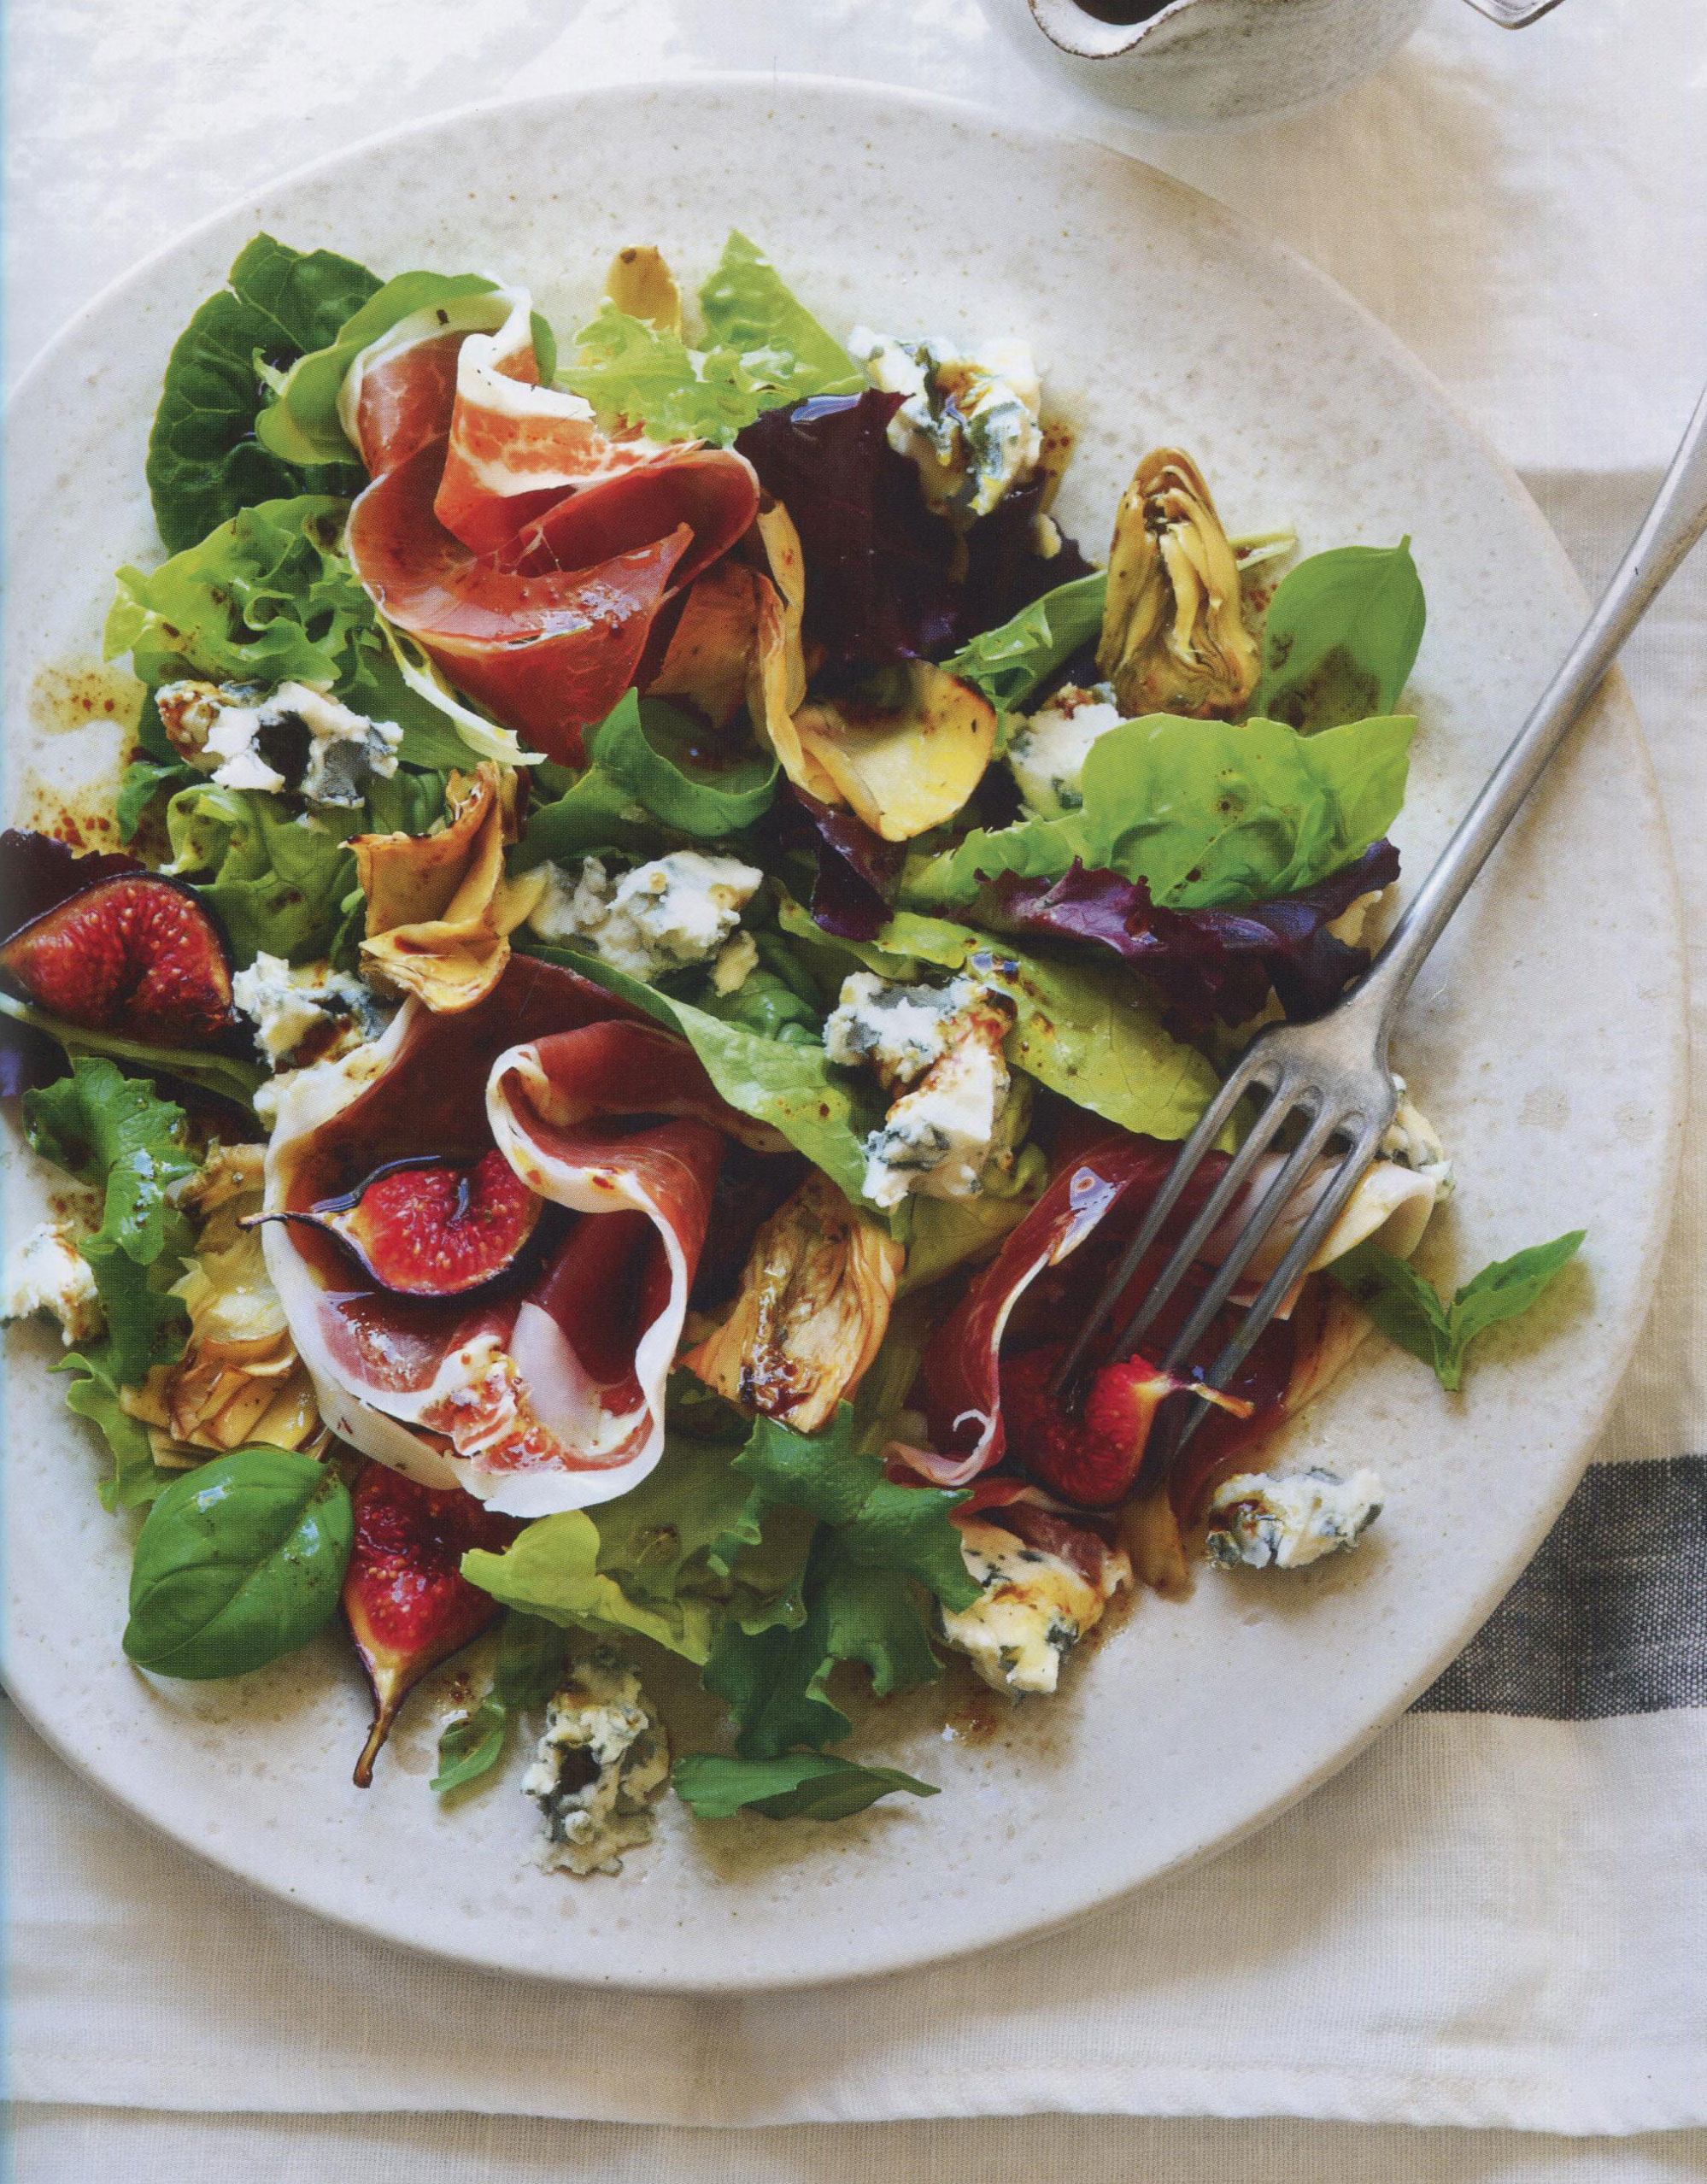 TBT Recipe: Prosciutto, Artichoke, Fig and Roquefort Salad with Balsamic Dressing